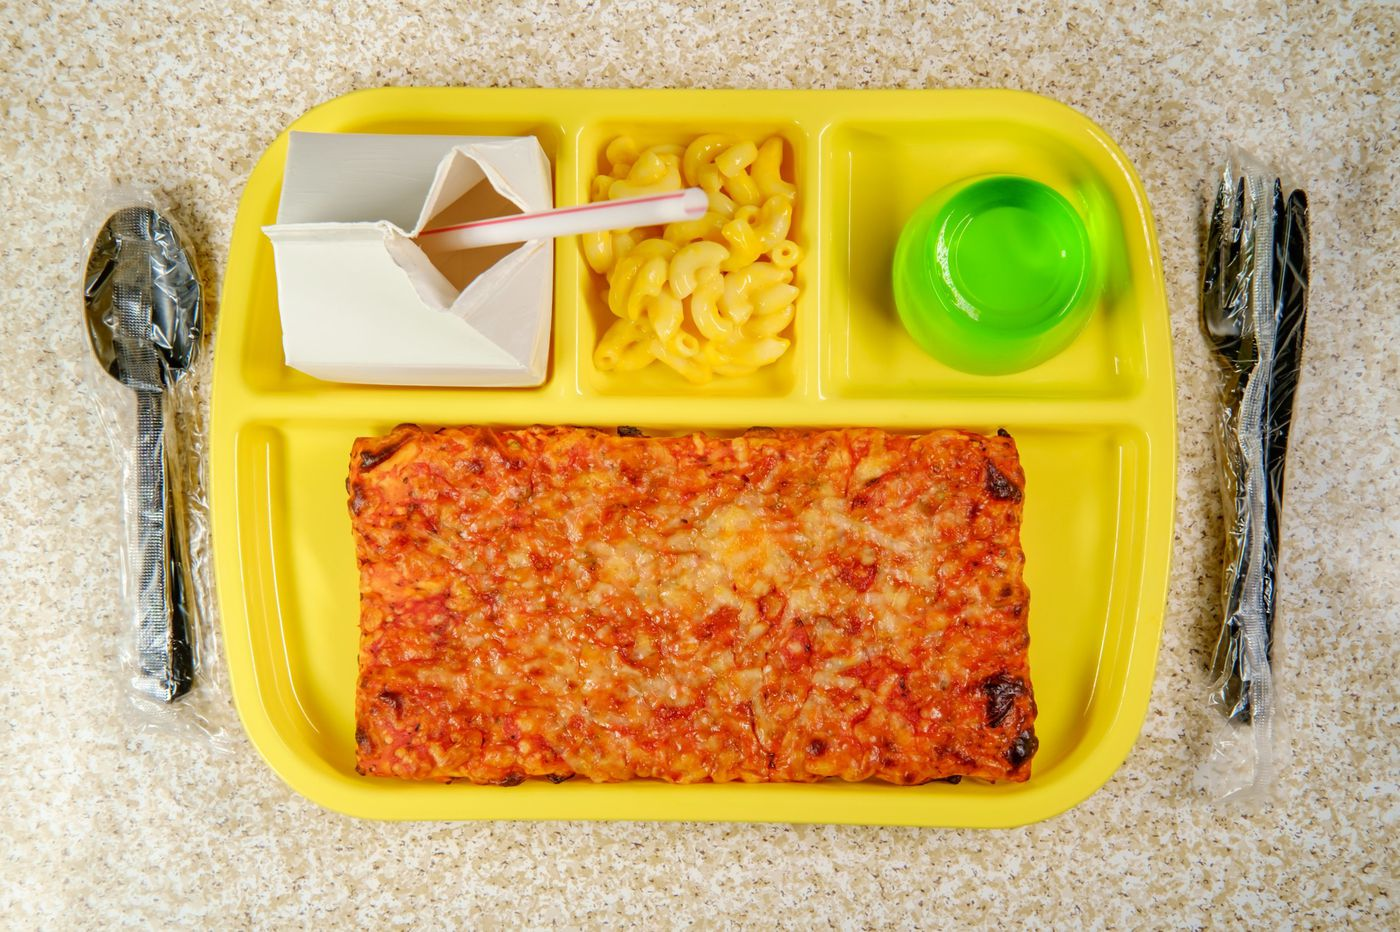 Tuna sandwiches could be out as Cherry Hill school district proposes changes to lunch policy